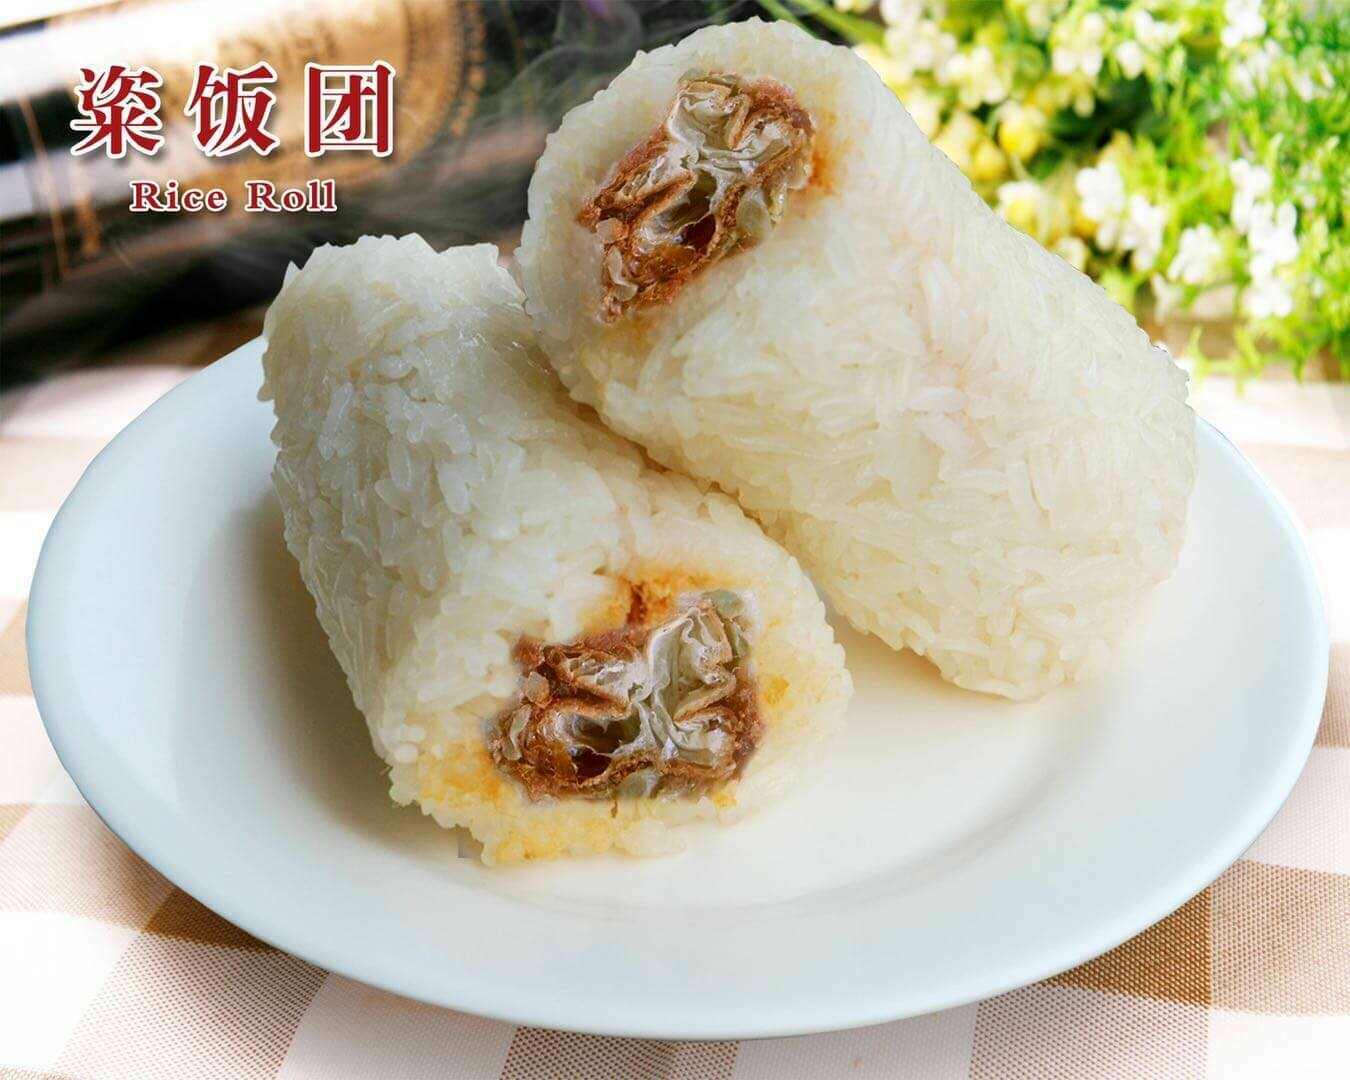 【又一村】Rice Roll 粢饭团 (肉松油条梓菜) (Closed Monday& Tuesday)